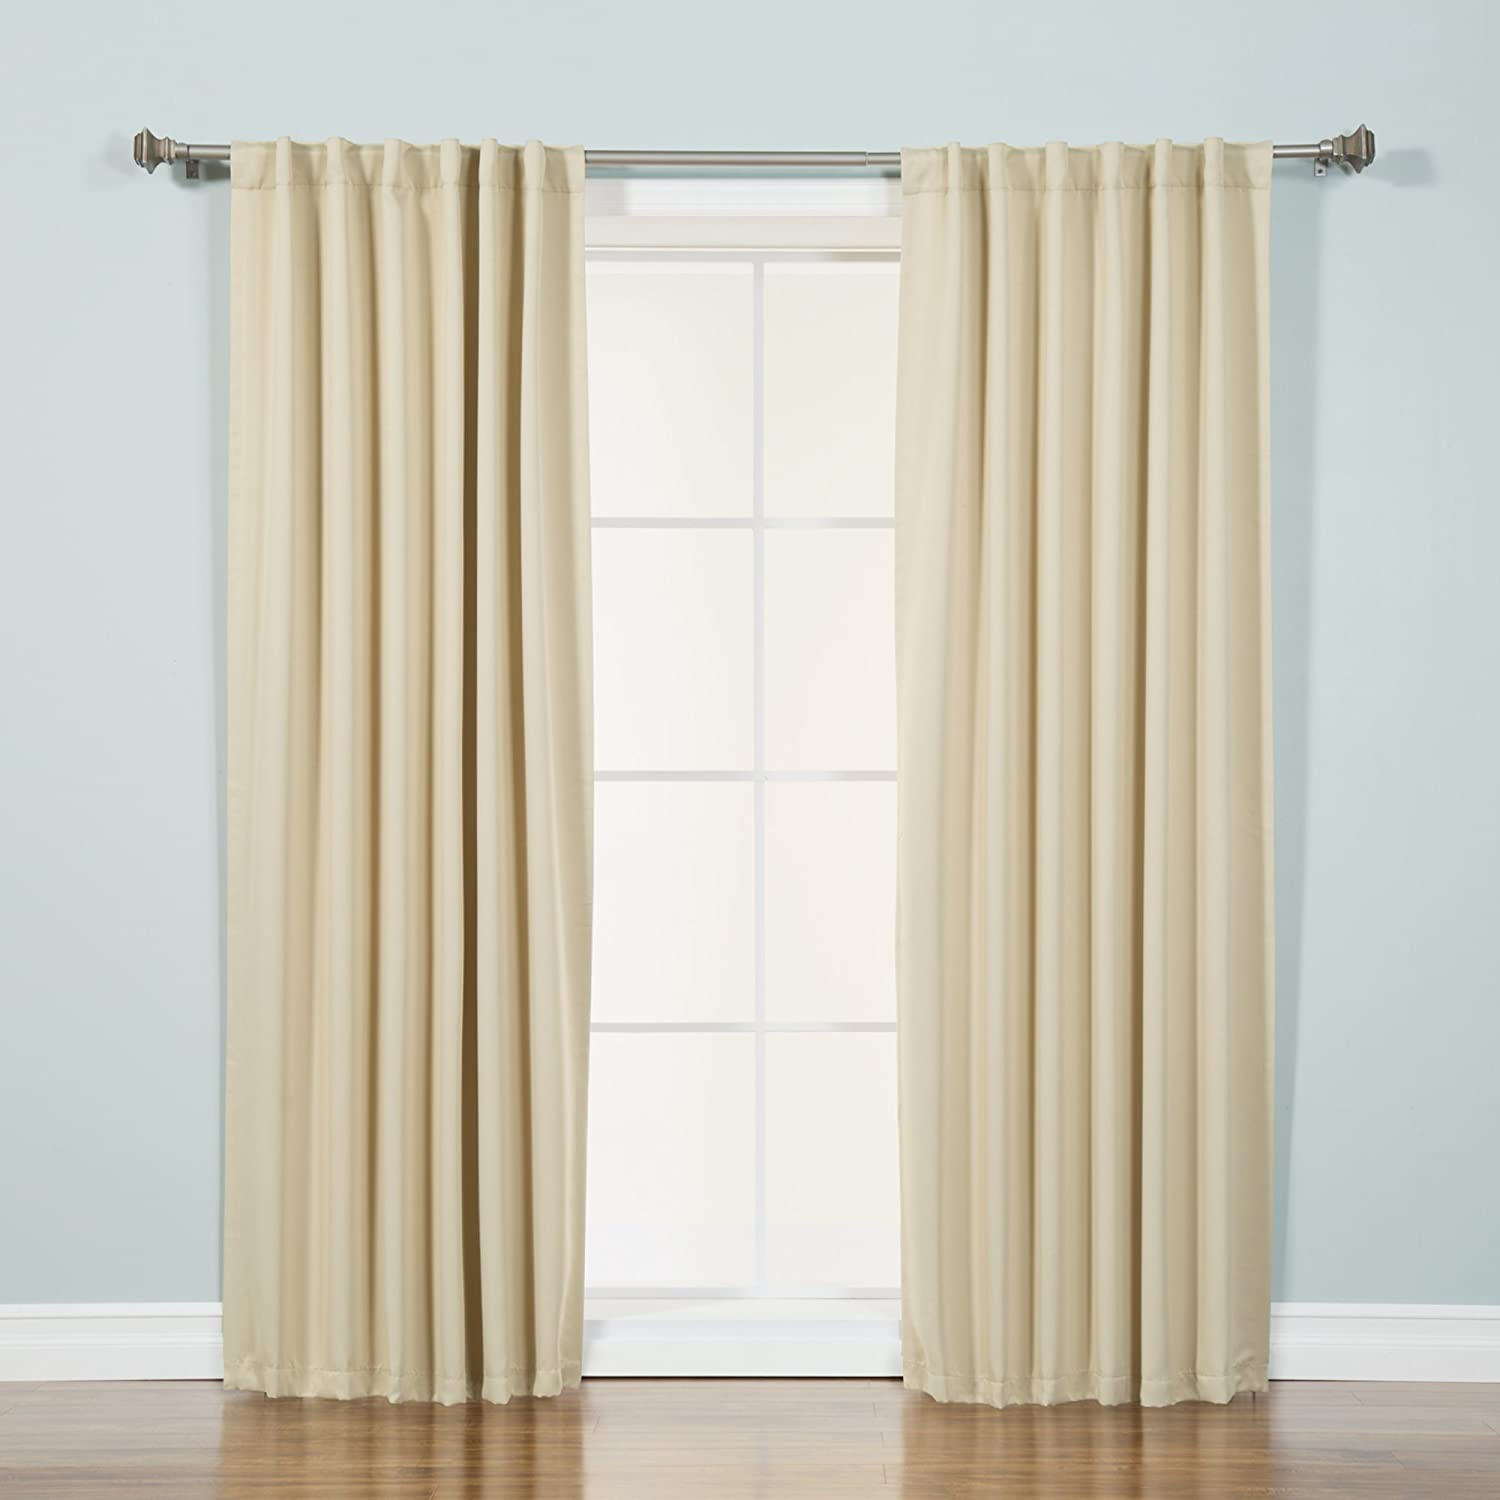 Best Home Fashion Basic Thermal Insulated Blackout Curtains - Back Tab/Rod Pocket - Beige - 52